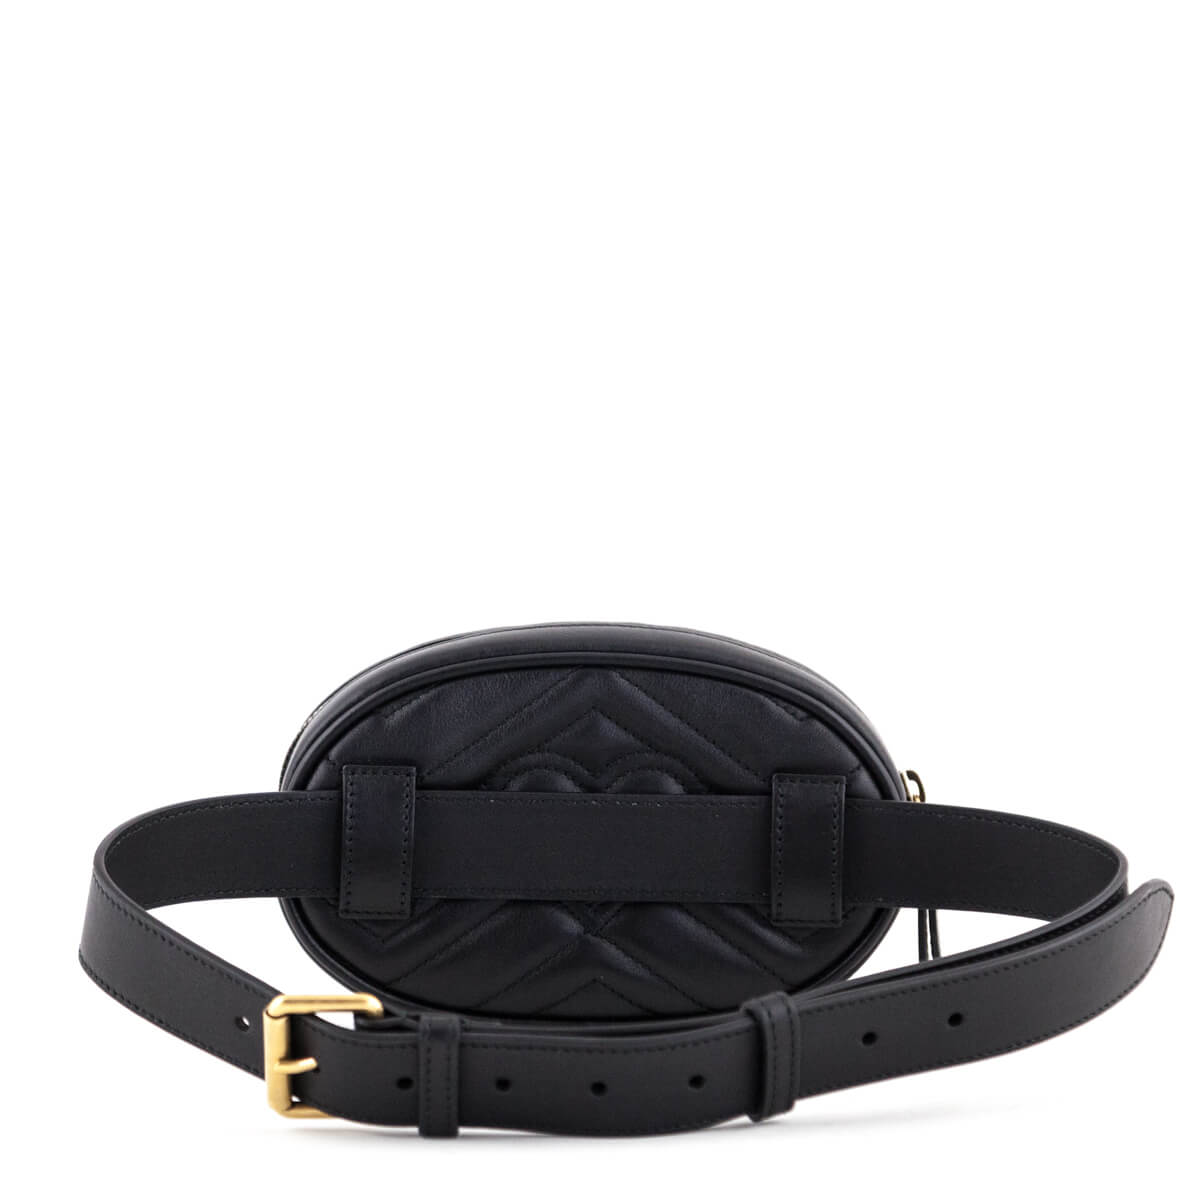 66b52ac4a9d ... Gucci Black GG Chevron Matelassé Marmont Belt Bag 75 - LOVE that BAG -  Preowned Authentic ...